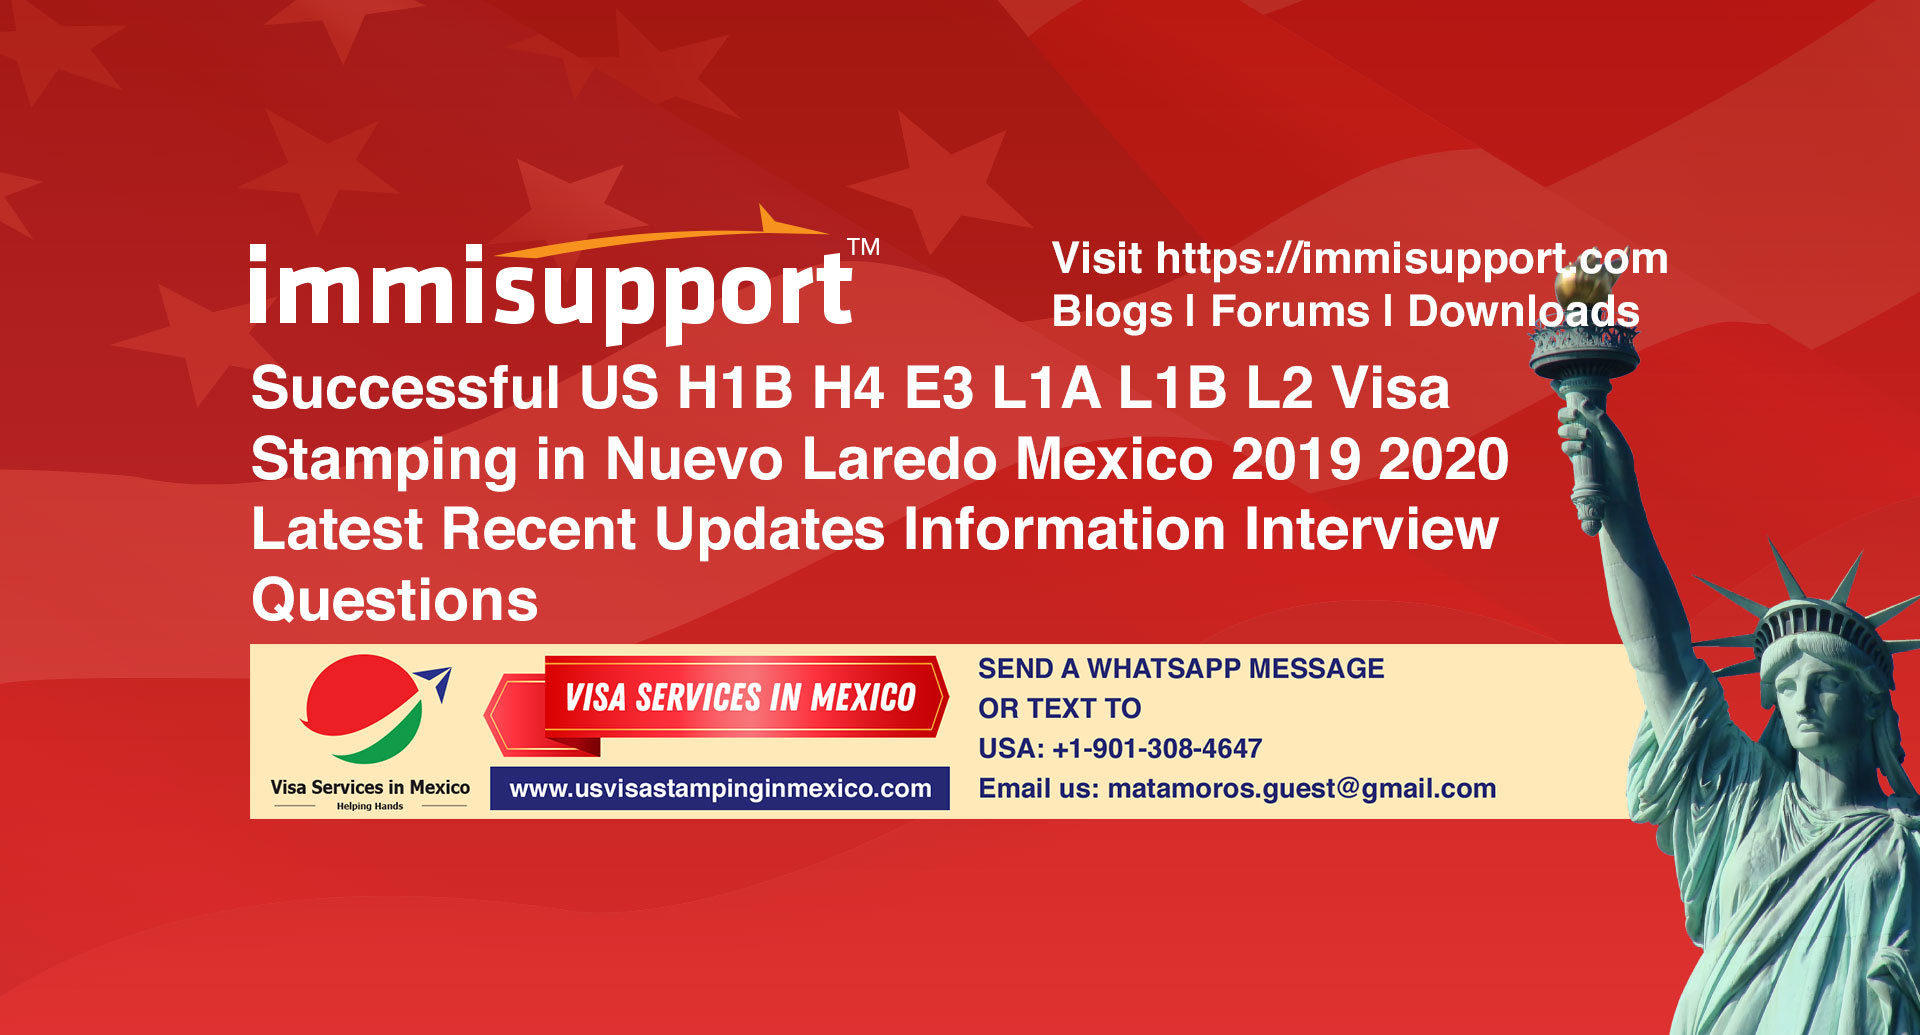 Successful US H1B H4 E3 L1A L1B L2 Visa Stamping in Nuevo Laredo Mexico 2019 2020 Latest Recent Updates Information Interview Questions